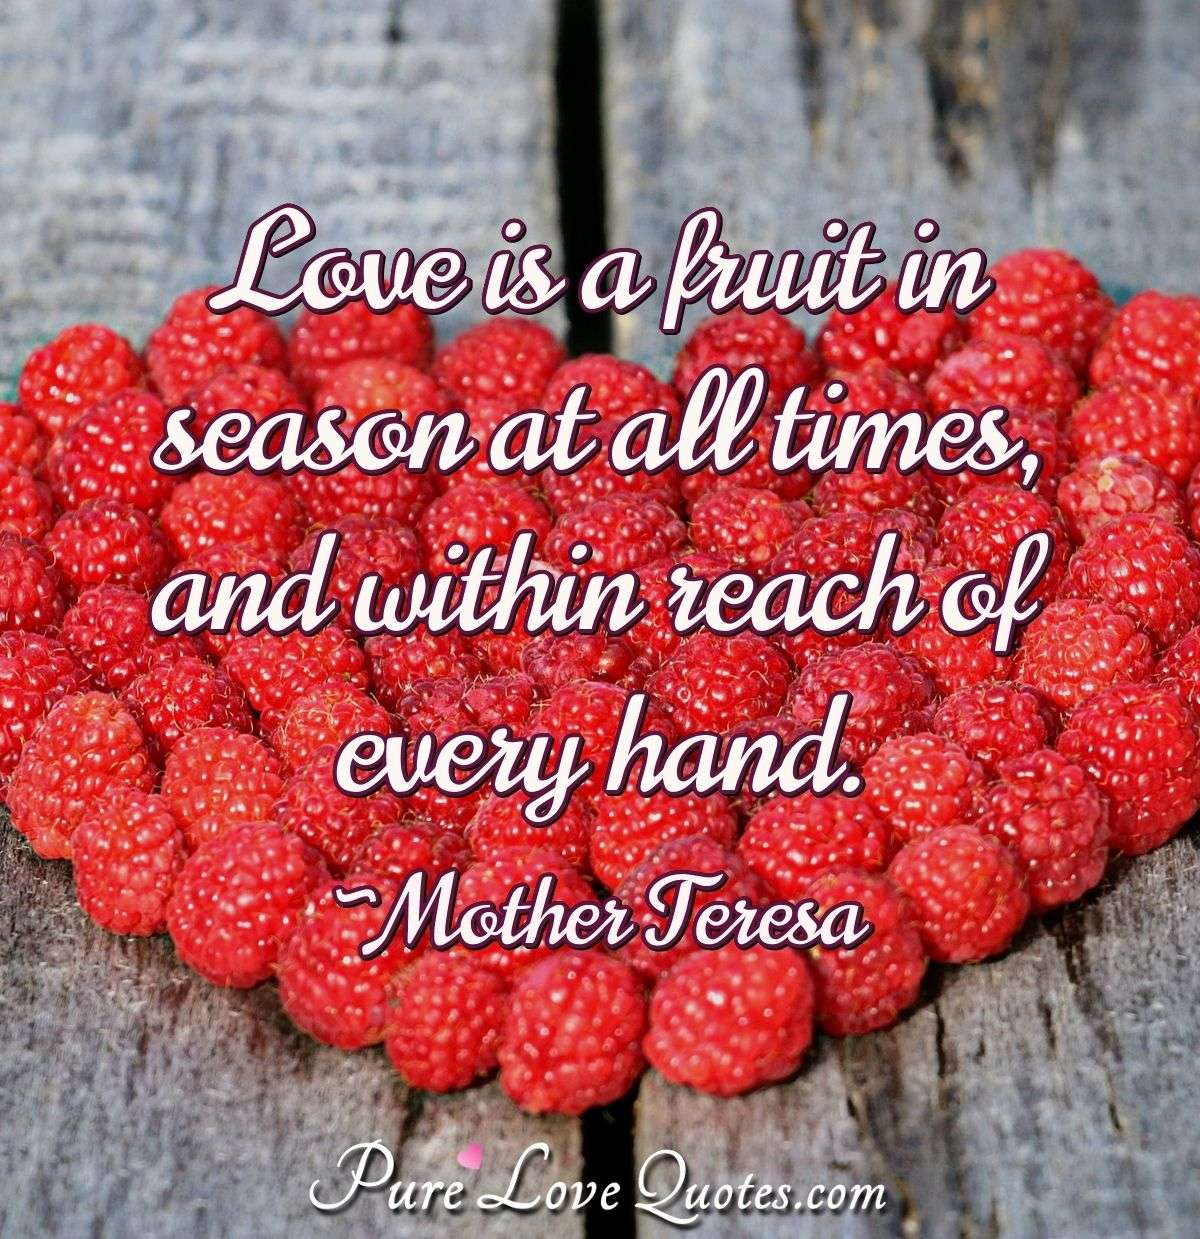 Love is a fruit in season at all times, and within reach of every hand. - Mother Teresa